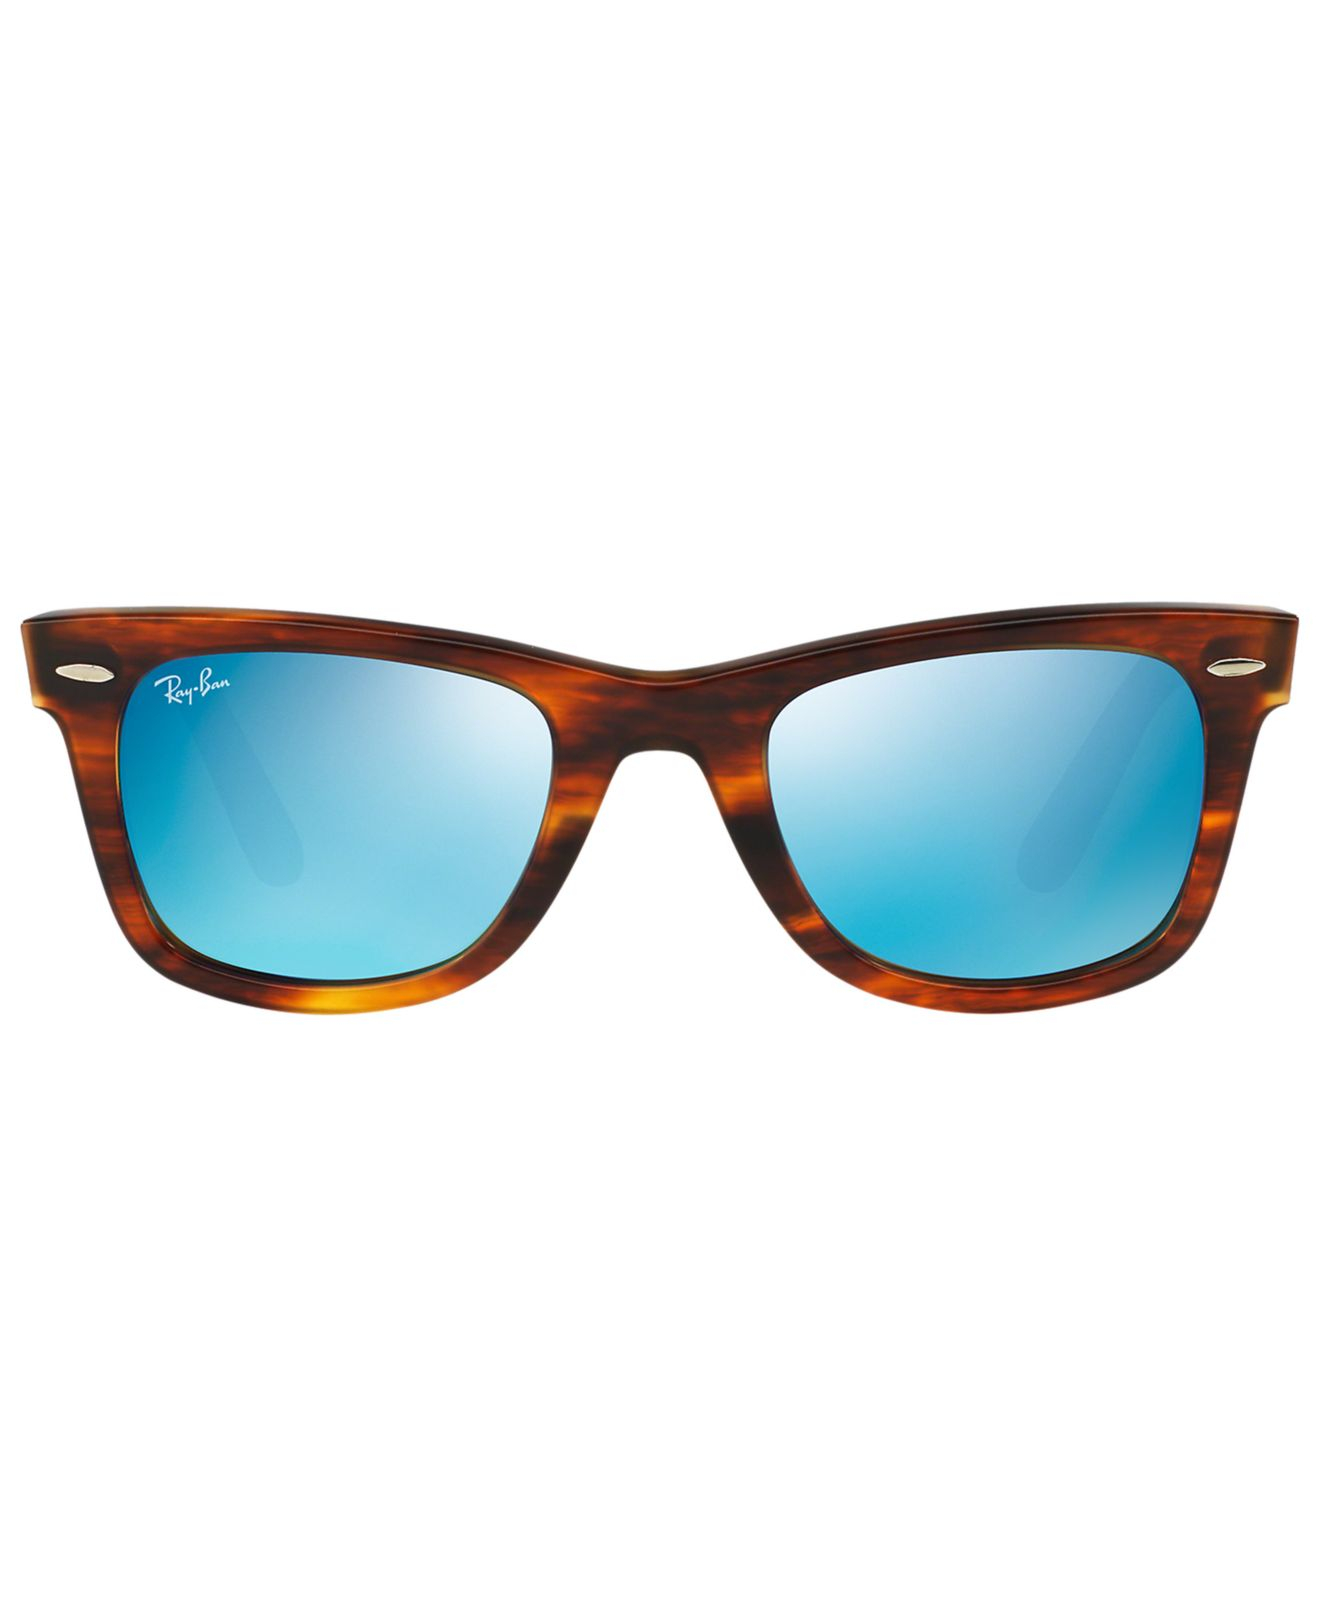 ray ban 2140 temple size